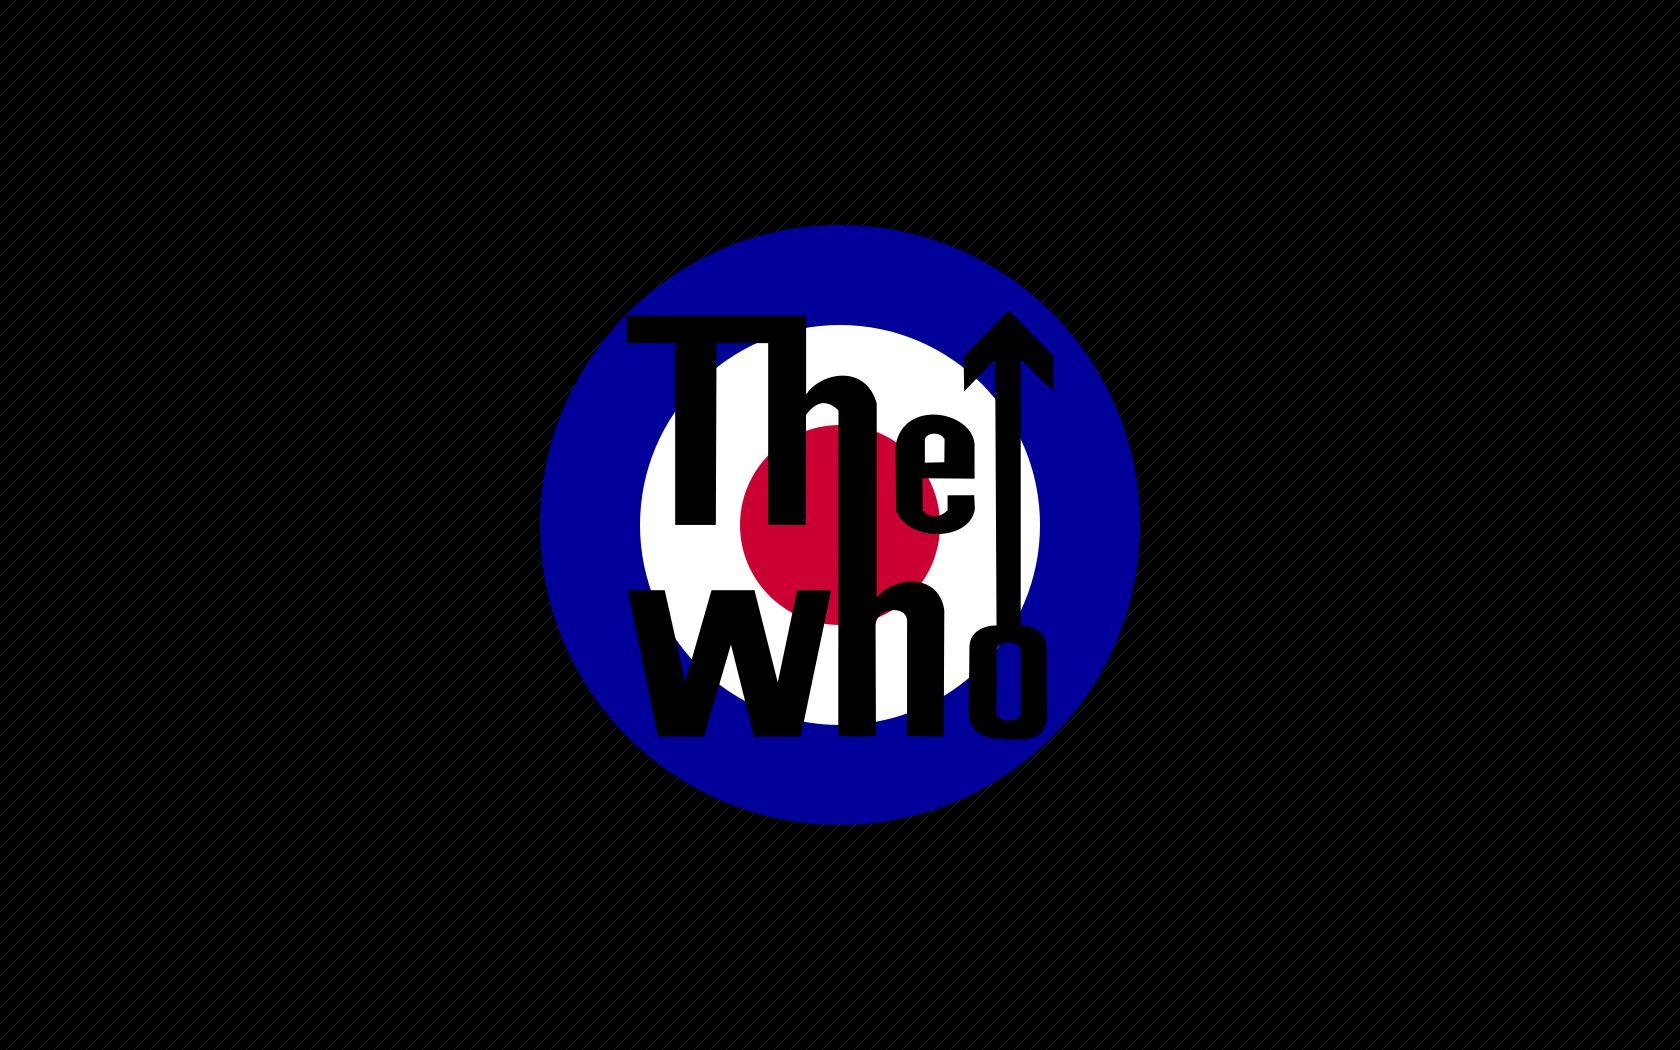 The Who Wallpapers Group with 54 items